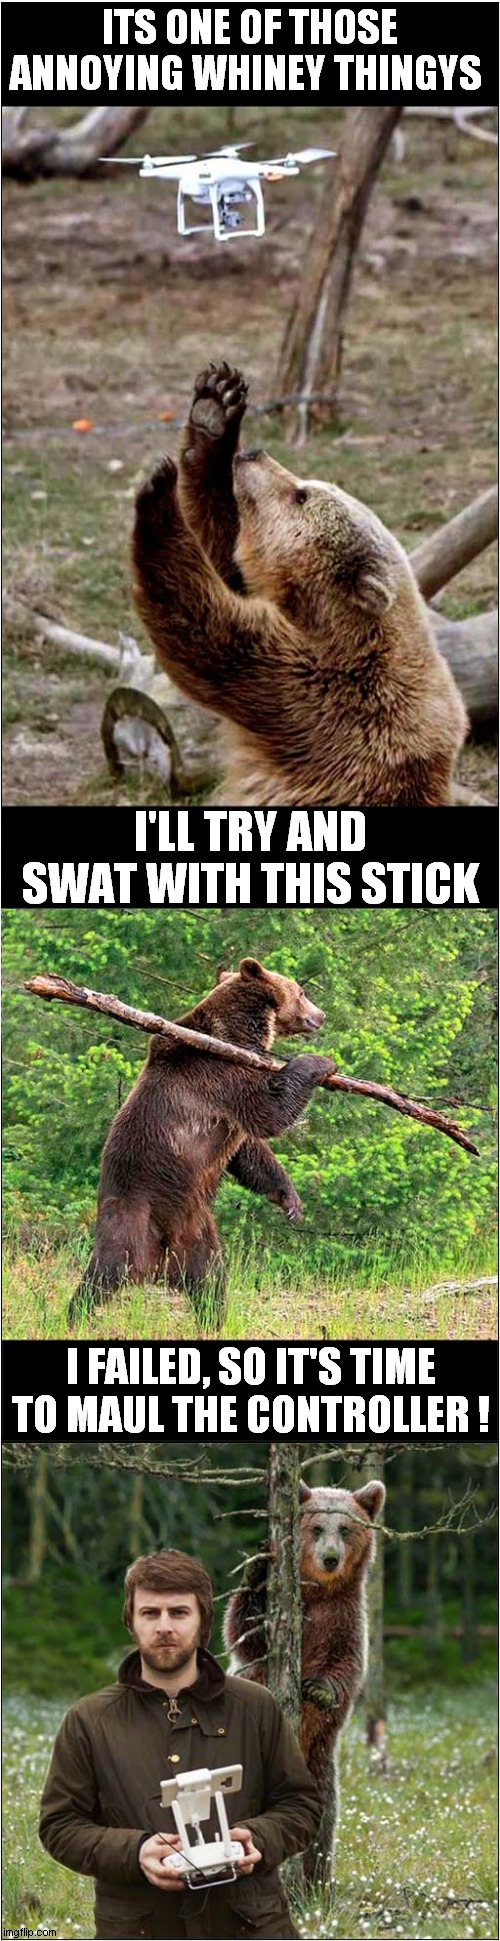 Bear Vs Drone |  ITS ONE OF THOSE ANNOYING WHINEY THINGYS; I'LL TRY AND SWAT WITH THIS STICK; I FAILED, SO IT'S TIME TO MAUL THE CONTROLLER ! | image tagged in fun,bear,drone | made w/ Imgflip meme maker